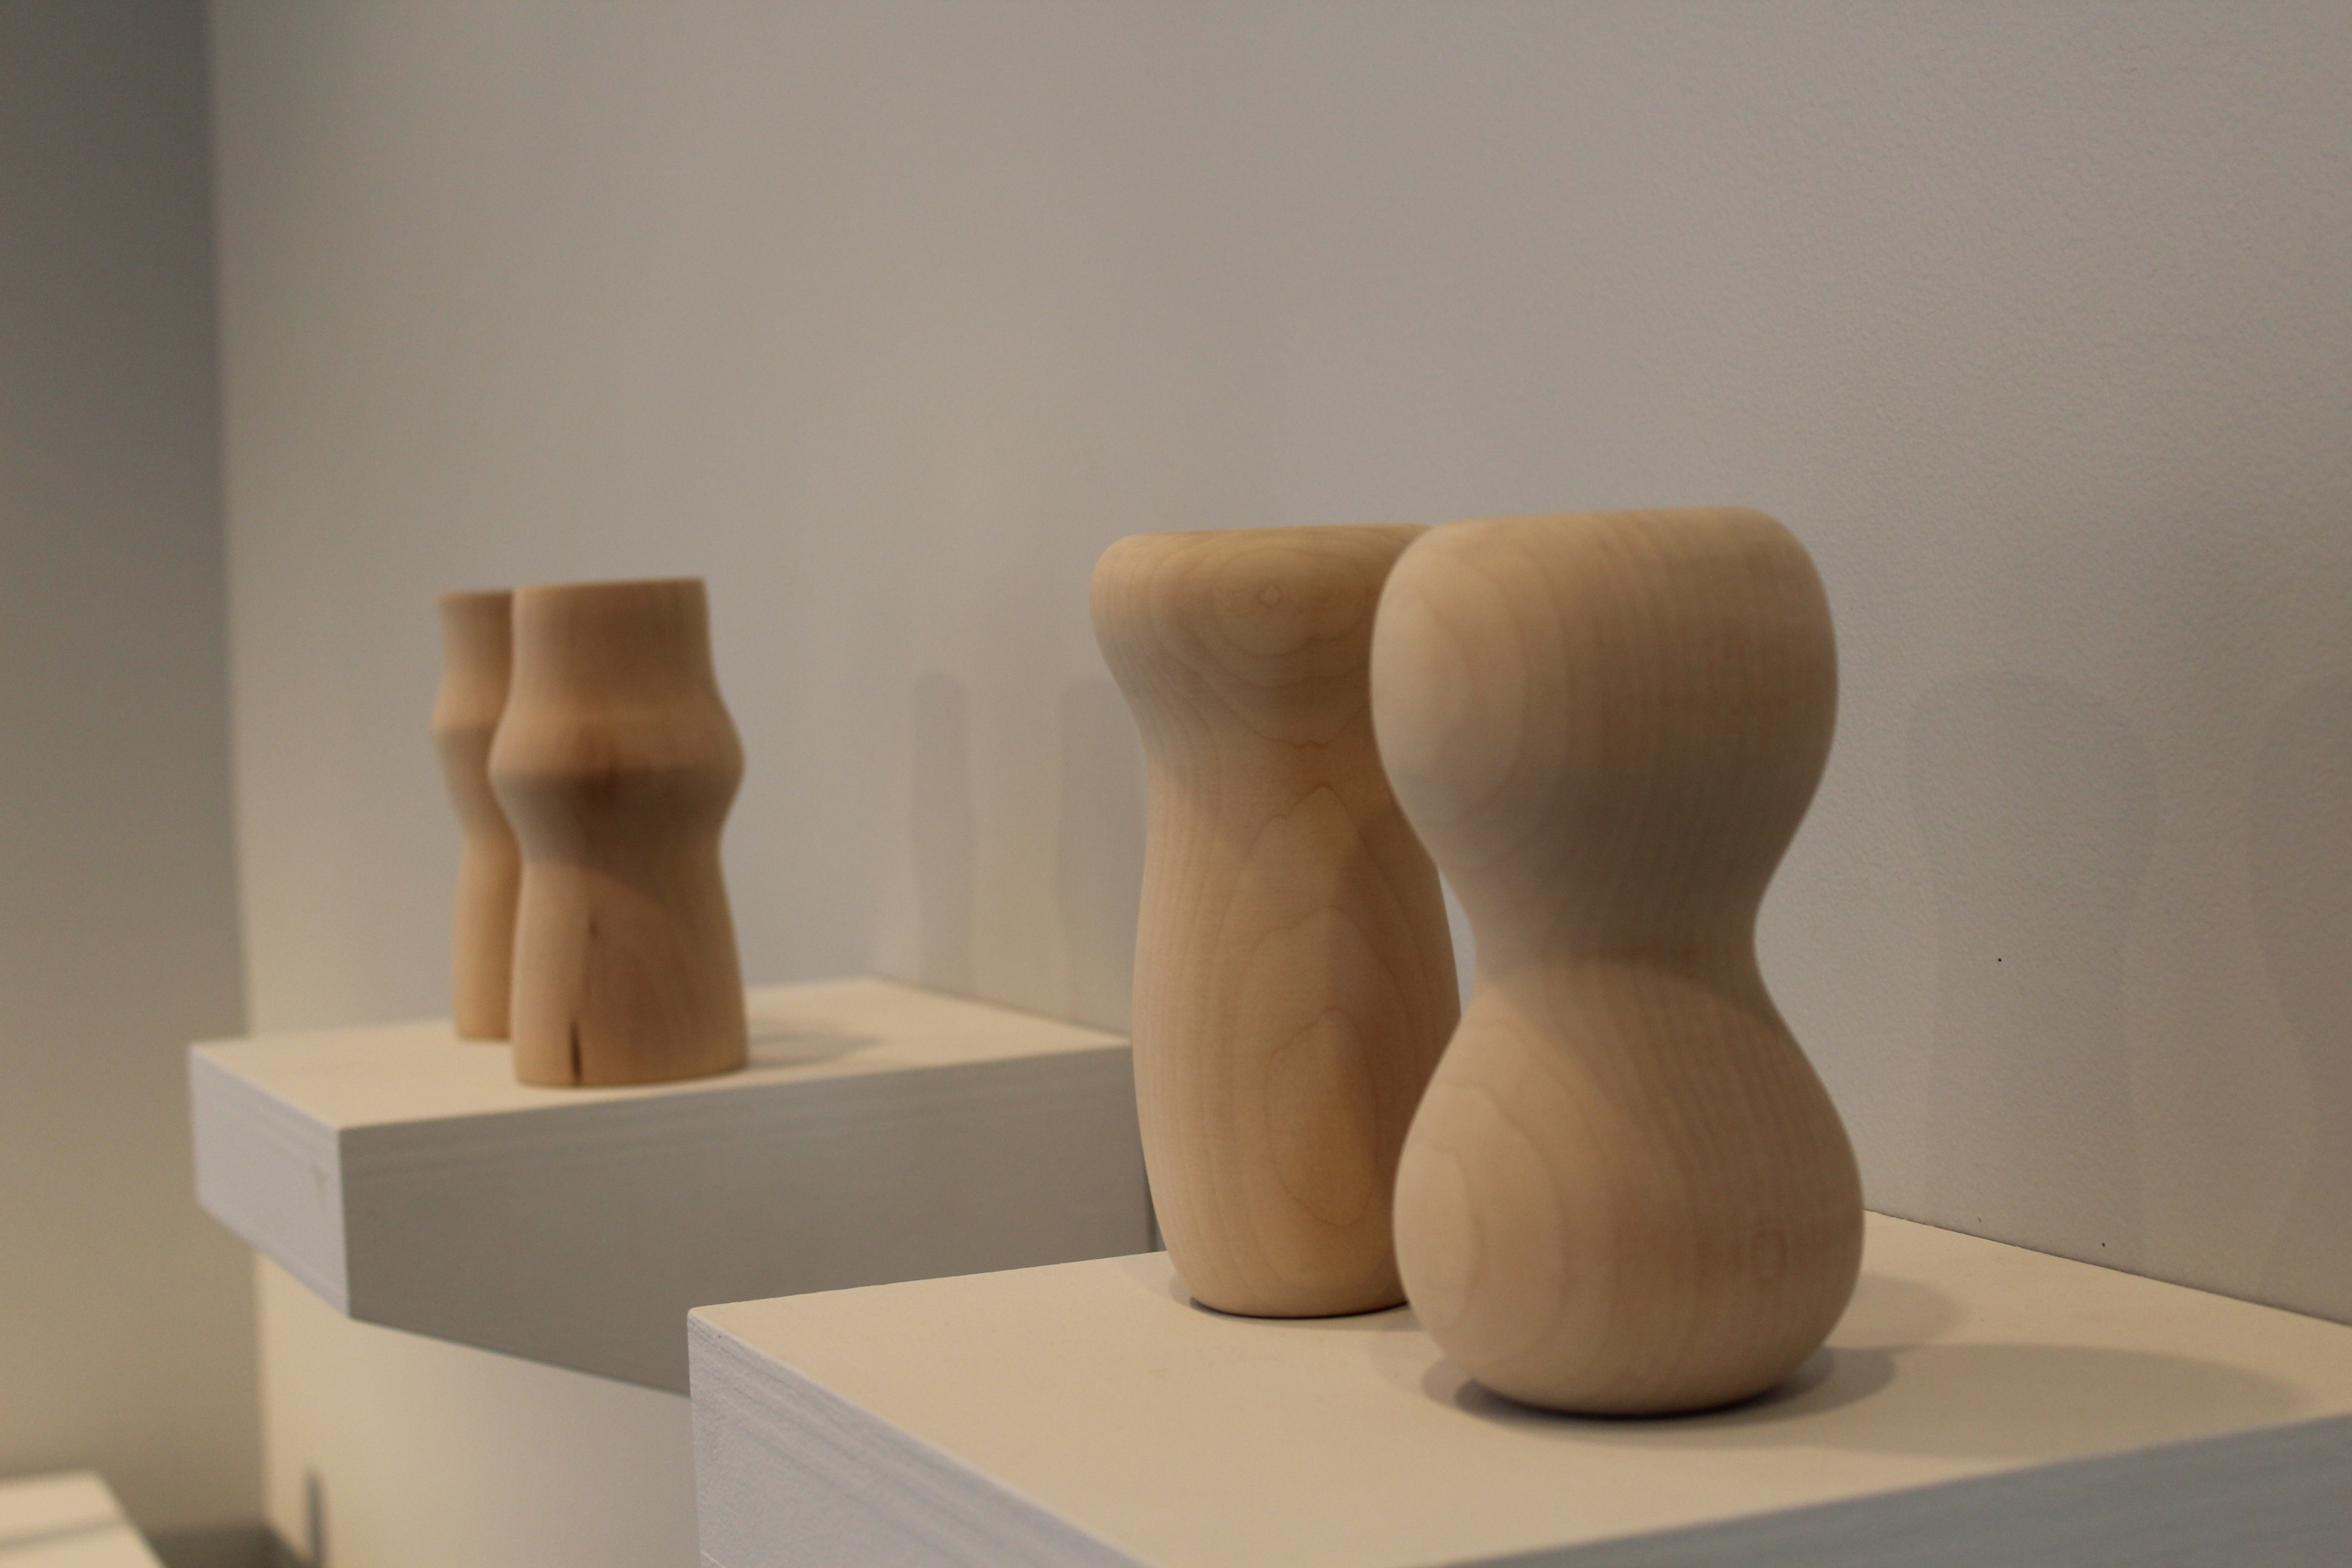 Wooden vases in pairs